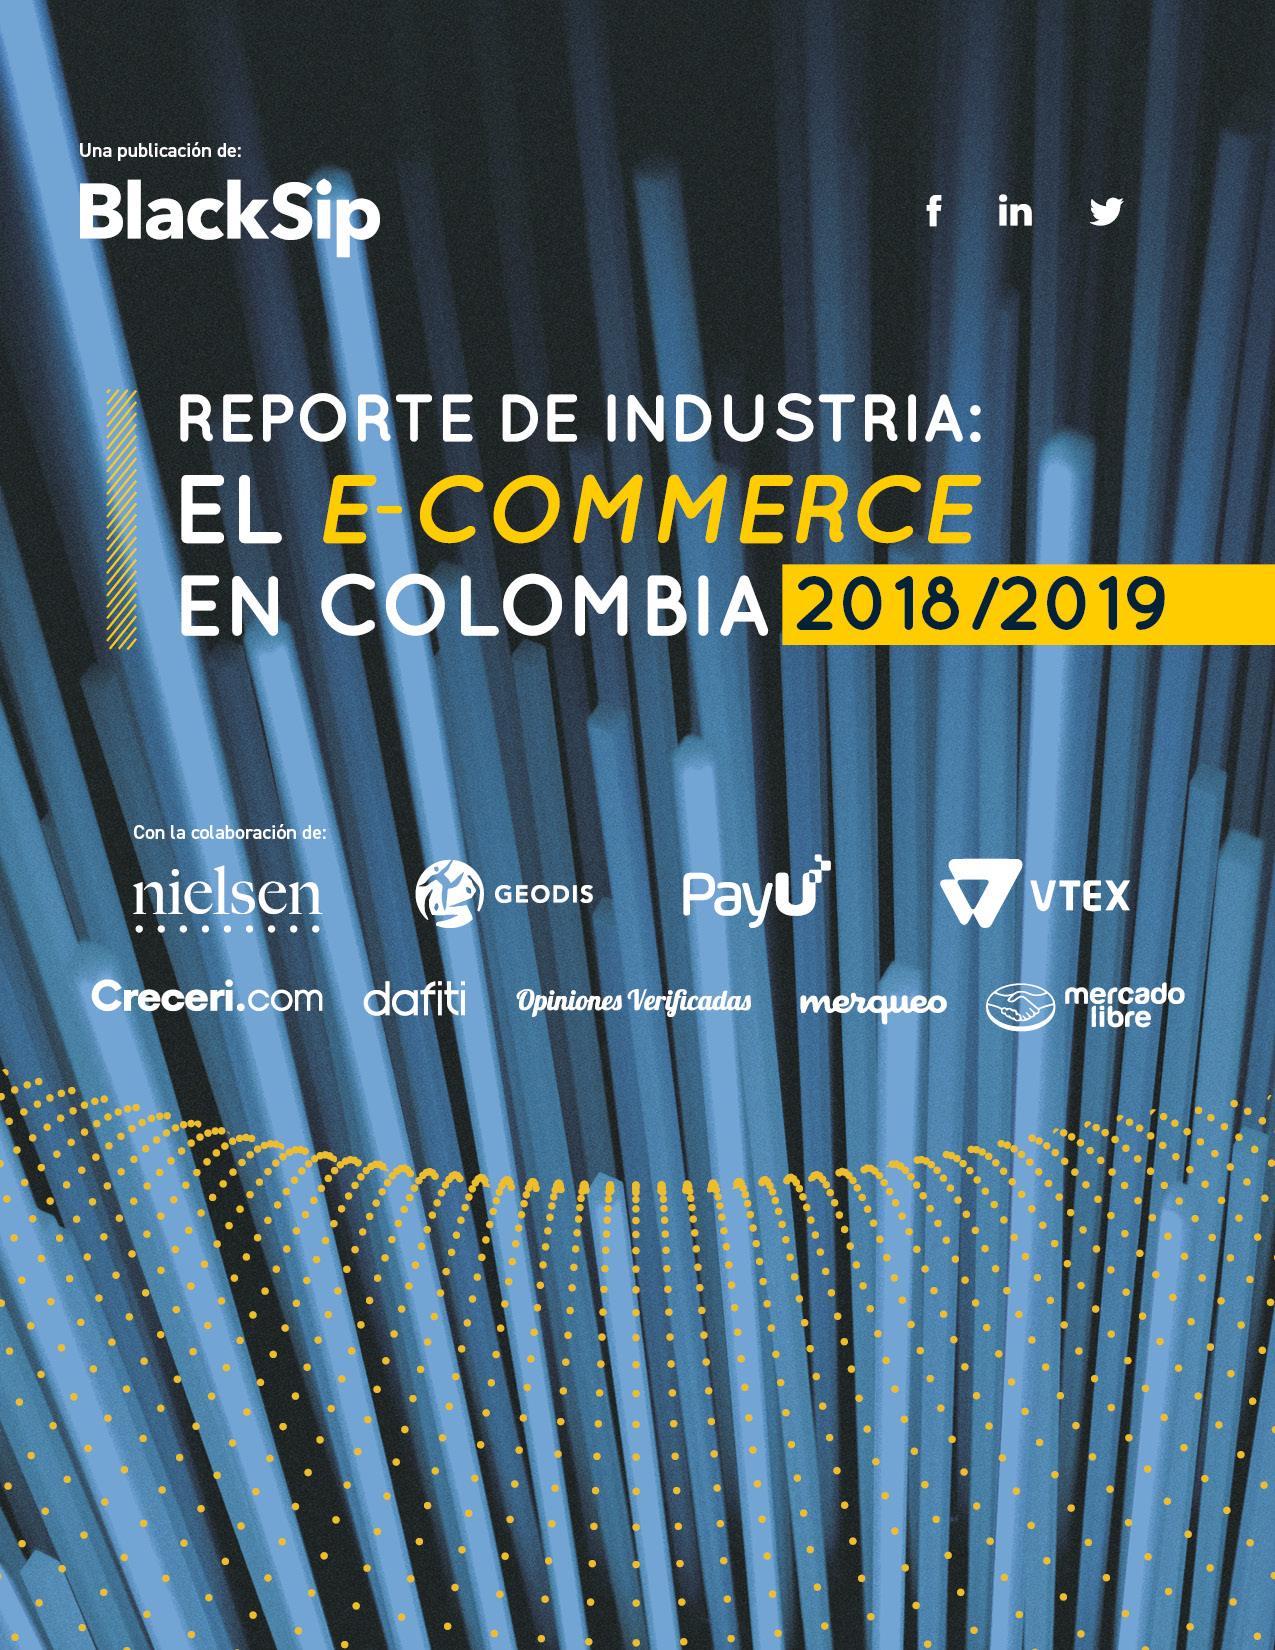 Reporte de industria: El E-commerce en Colombia 2018/2019